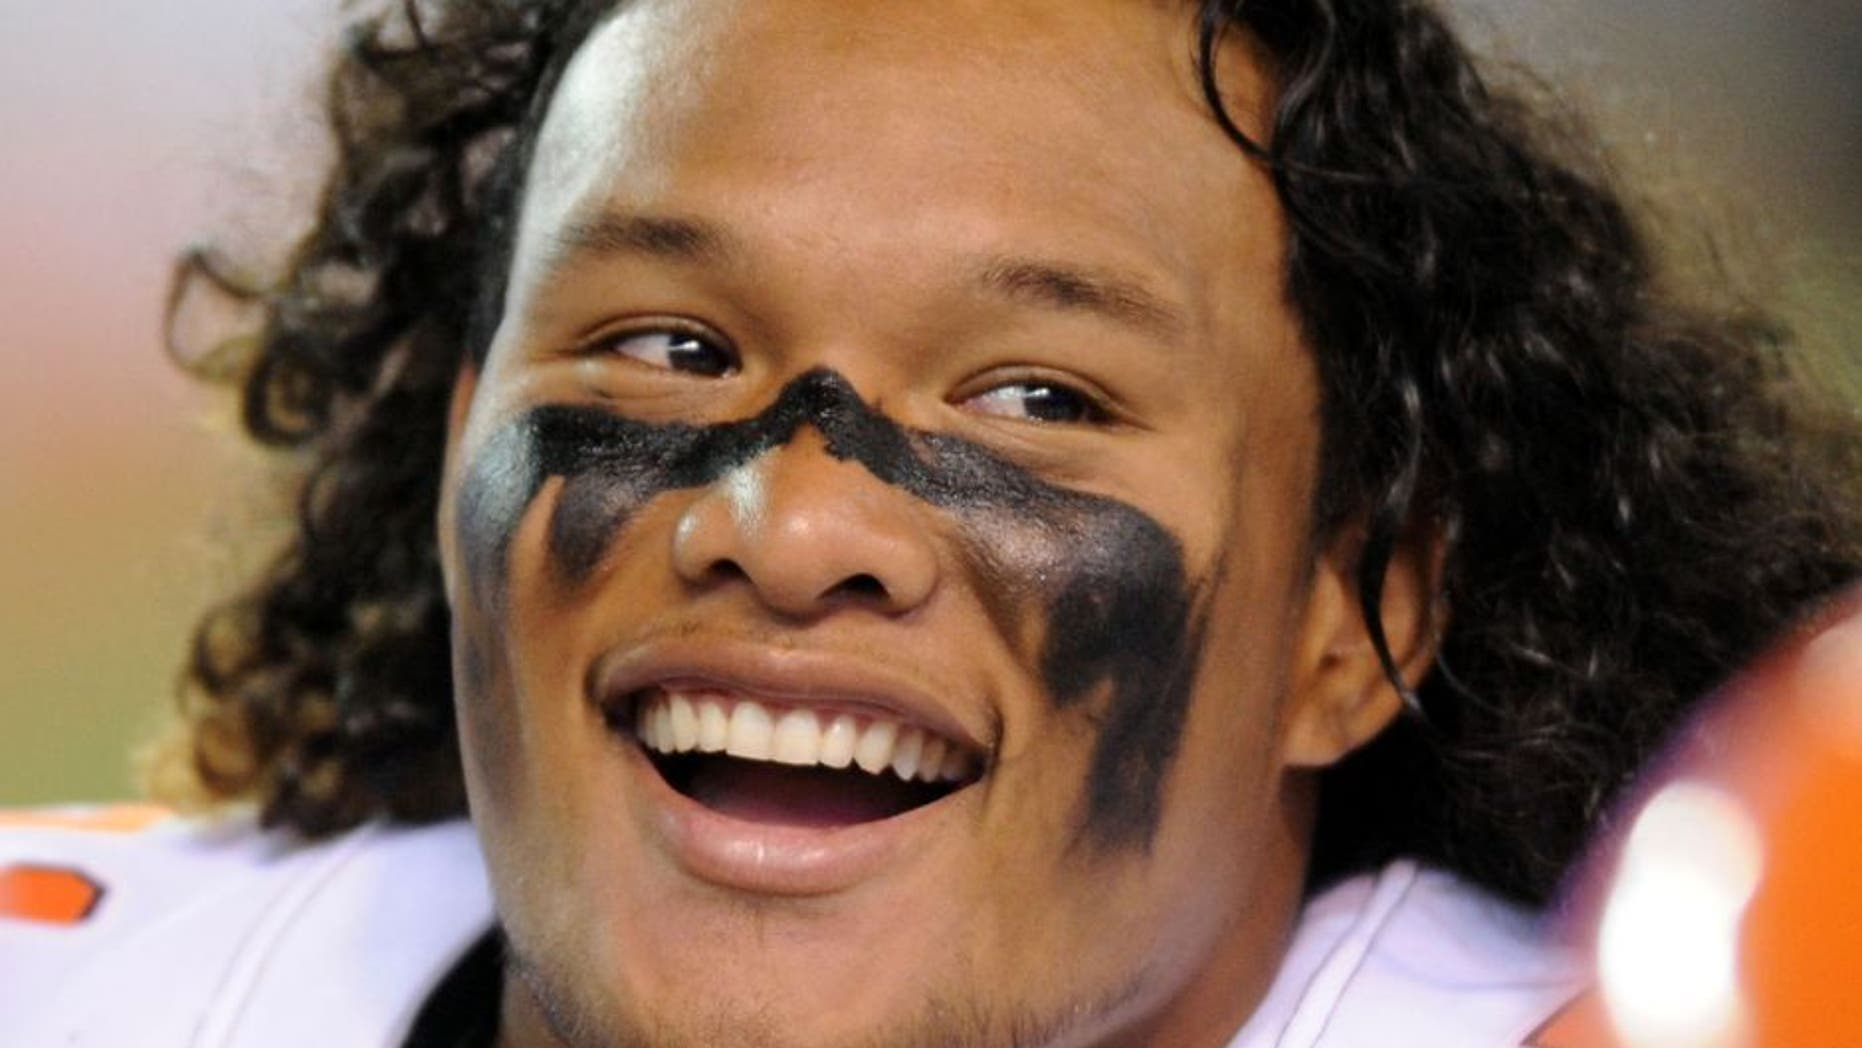 Aug 13, 2015; Cleveland, OH, USA; Cleveland Browns defensive tackle Danny Shelton (71) on the sideline against the Washington Redskins in a preseason NFL football game at FirstEnergy Stadium. Mandatory Credit: Ken Blaze-USA TODAY Sports